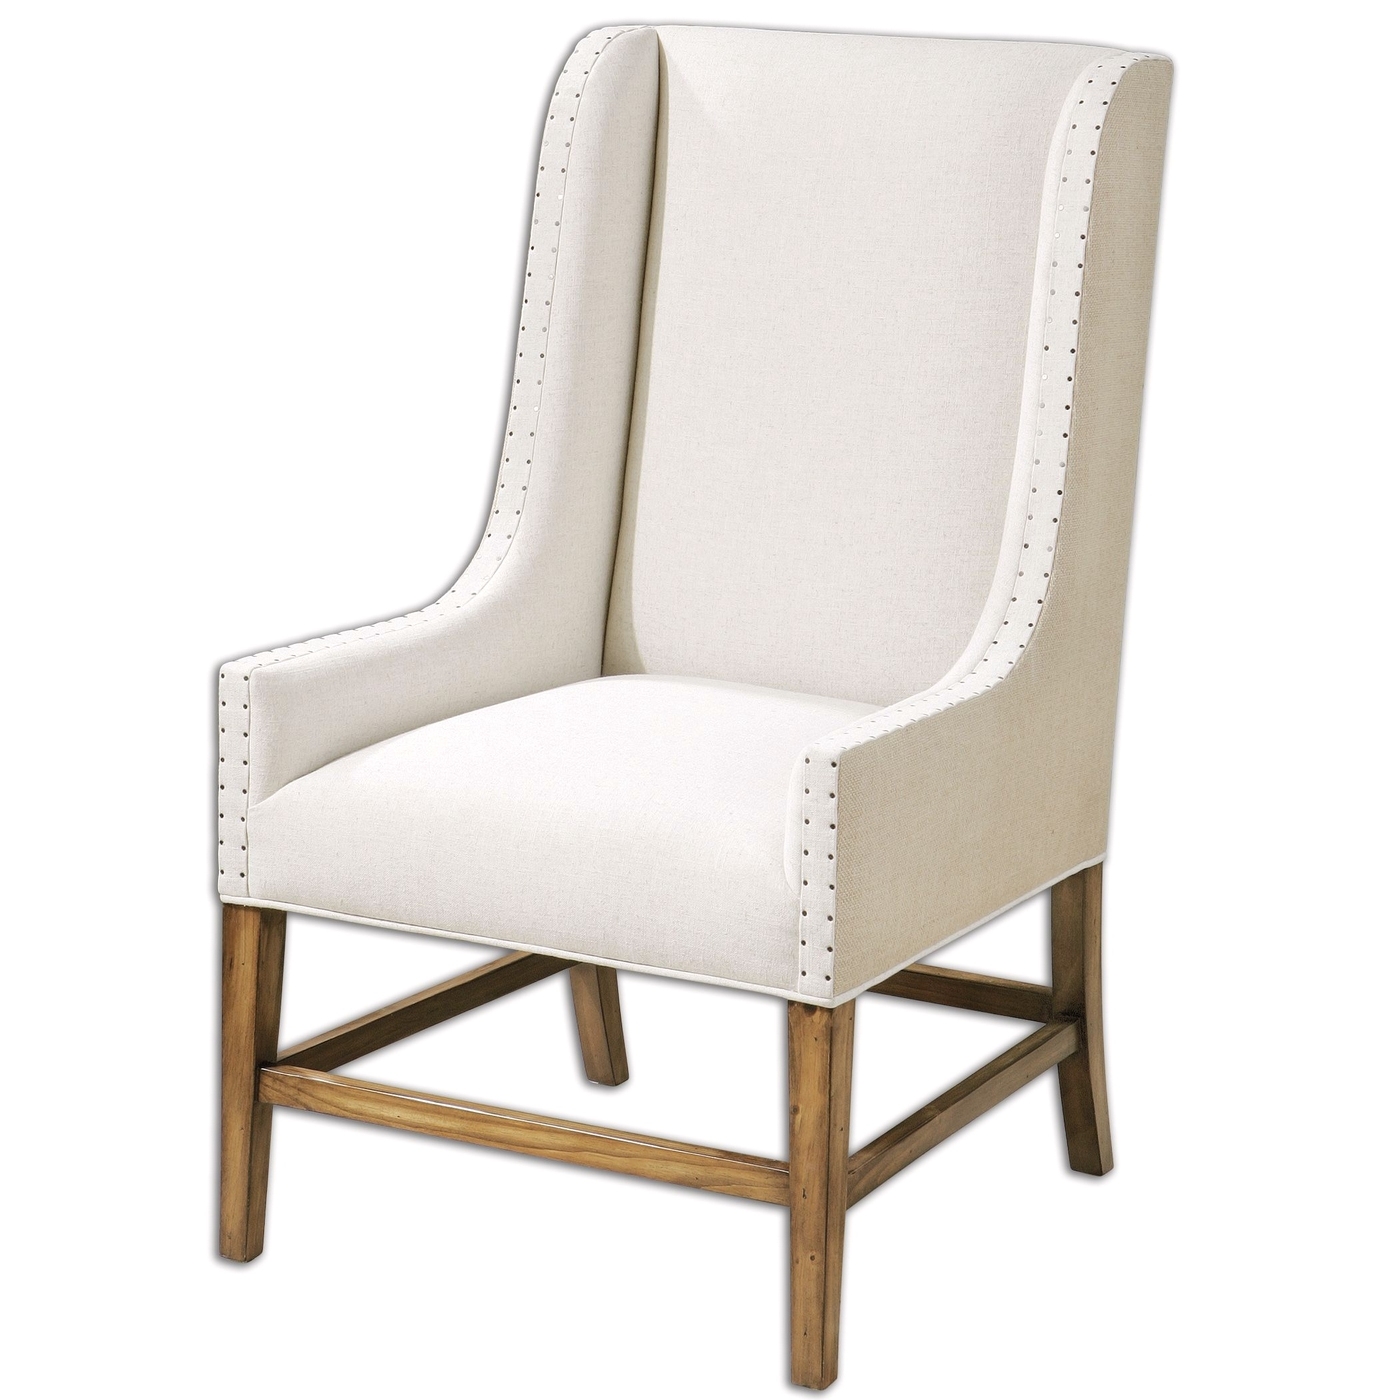 Dalma Neutral Linen Upholstery Wood Frame Wing Back Chair 23189. Full resolution‎  photograph, nominally Width 1400 Height 1400 pixels, photograph with #8C6A3F.